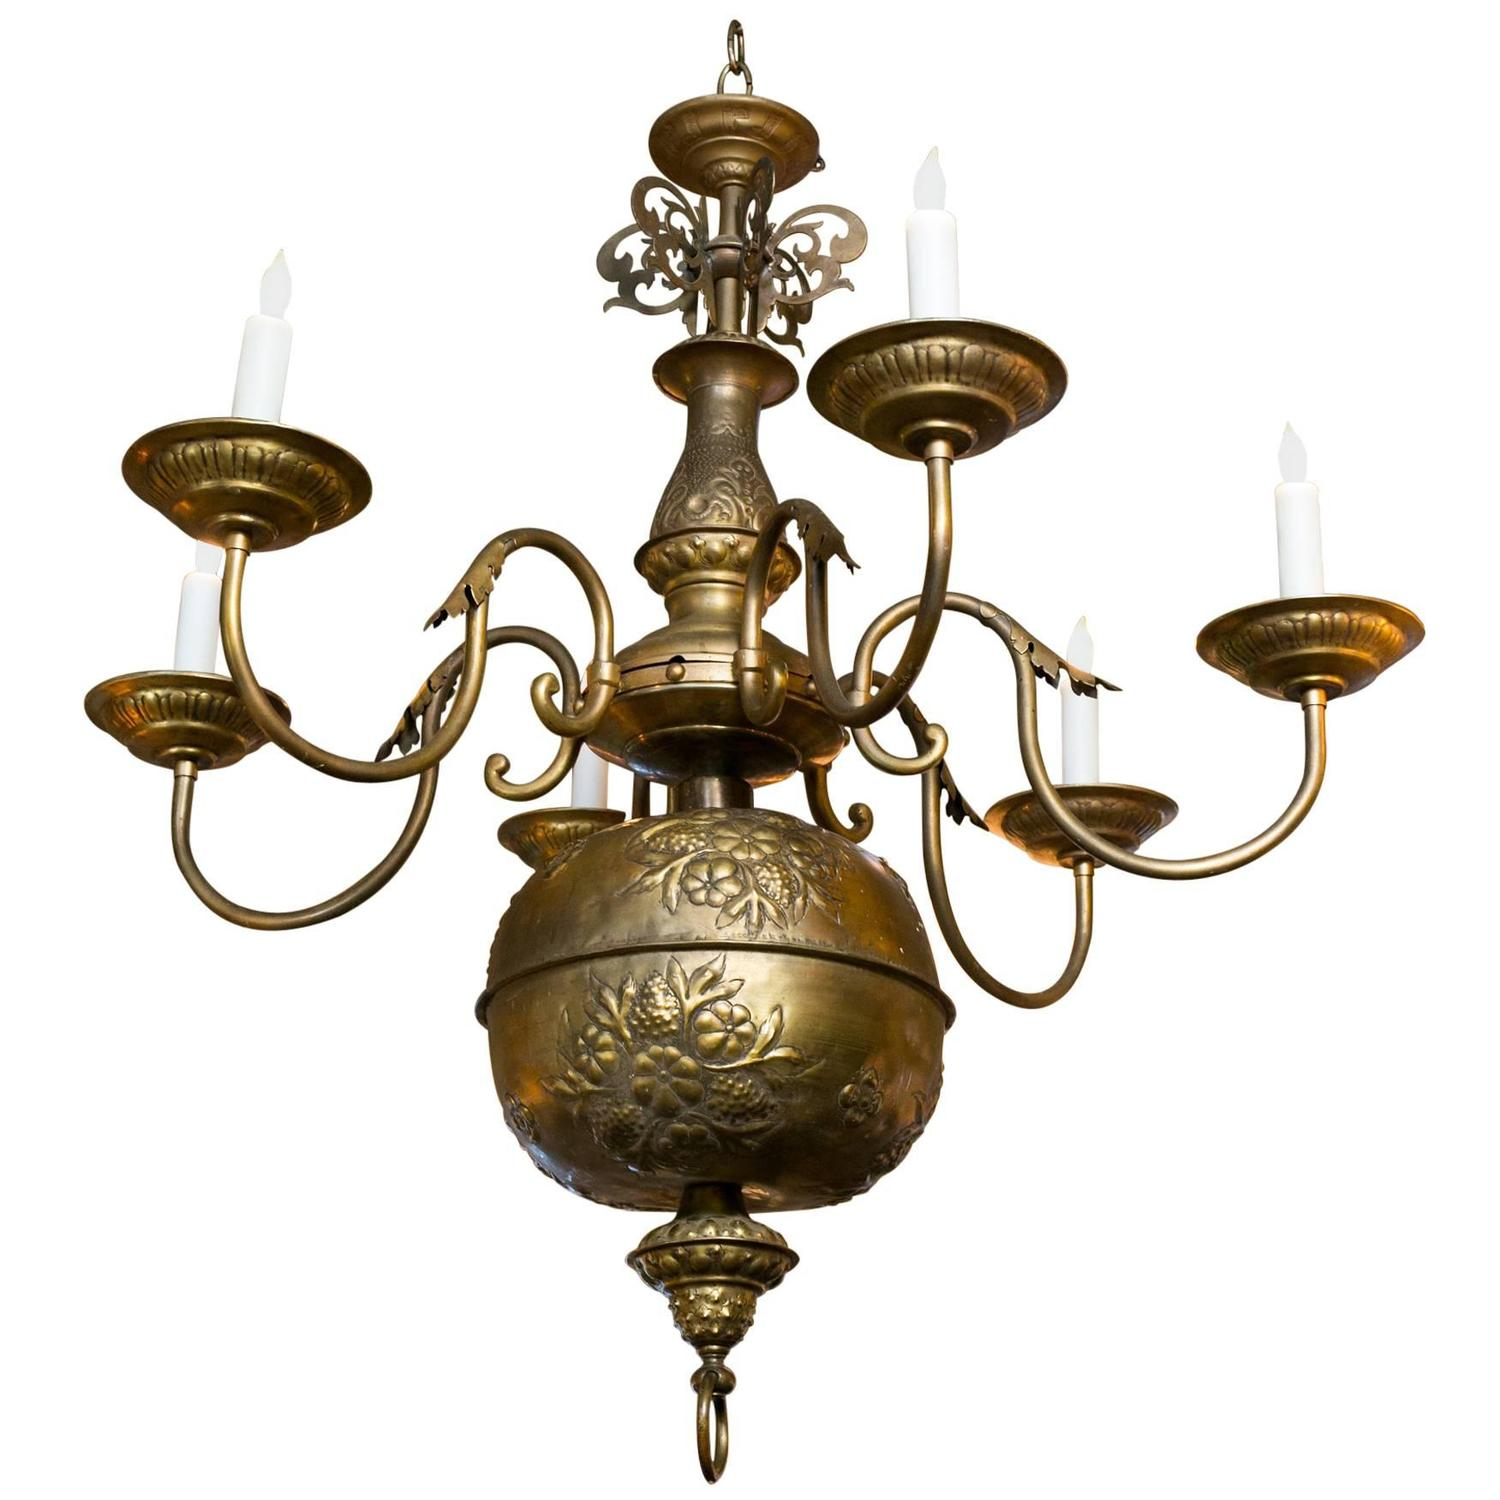 Rare Antique Repousse Dutch Style Six Arm Chandelier For